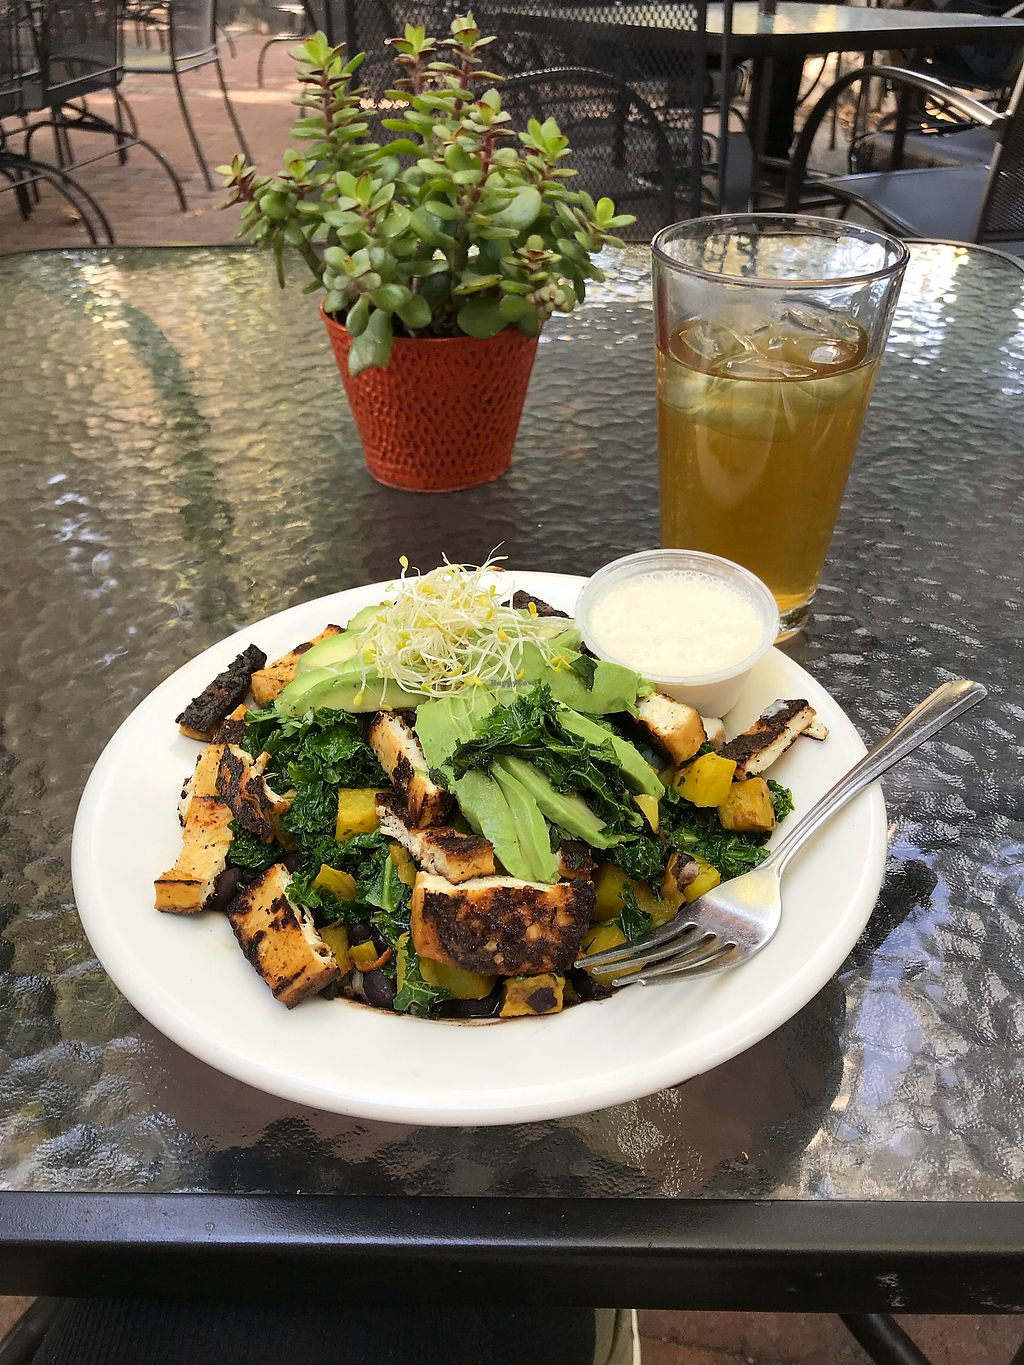 """Photo of Bliss Cafe  by <a href=""""/members/profile/yoga_veg"""">yoga_veg</a> <br/>Buddha Protein Bowl <br/> October 4, 2017  - <a href='/contact/abuse/image/19617/311868'>Report</a>"""